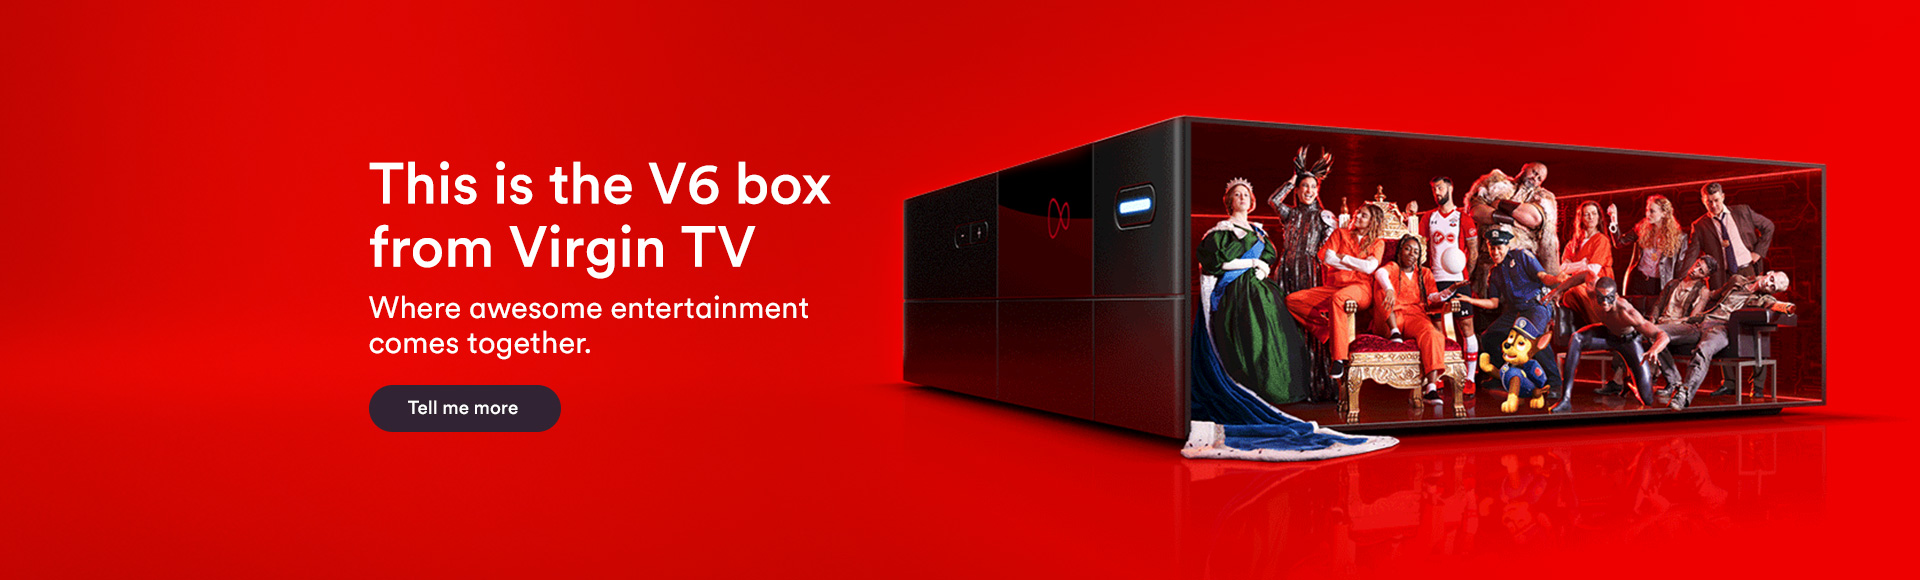 V6 box from Virgin TV